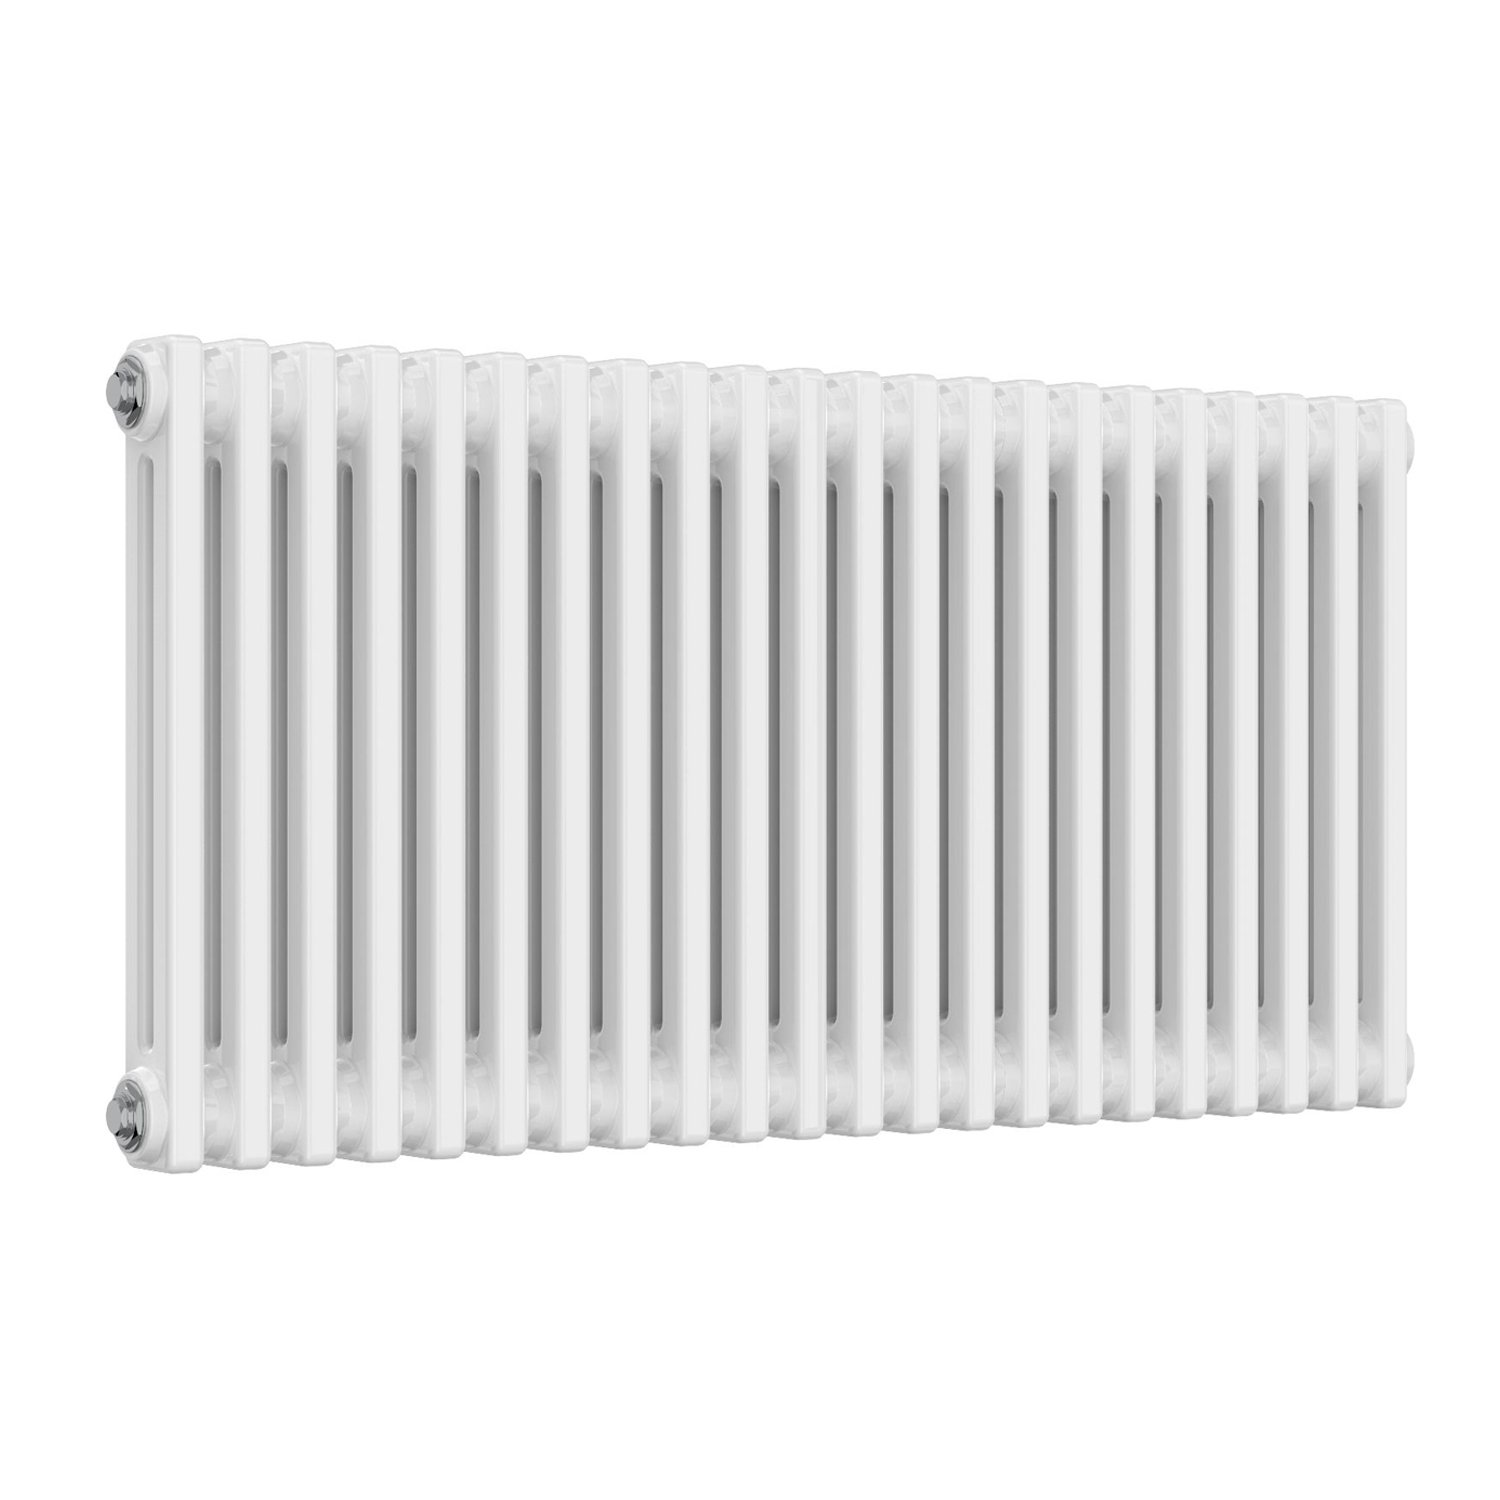 Stelrad Radical Radiator 600mm H x 1600mm W Double Convector 10mm Straight TRV-0